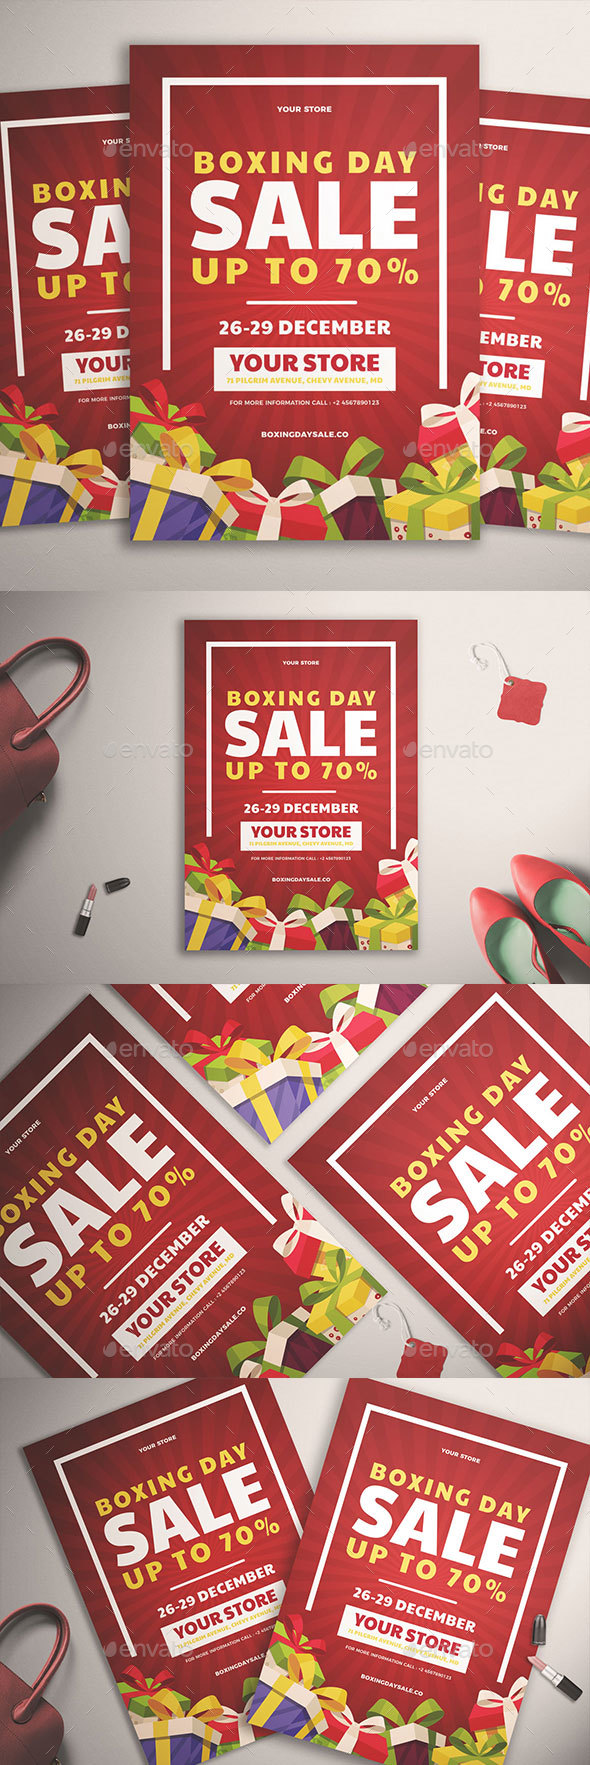 Boxing Day Sale Flyer Vol. 01 - Commerce Flyers